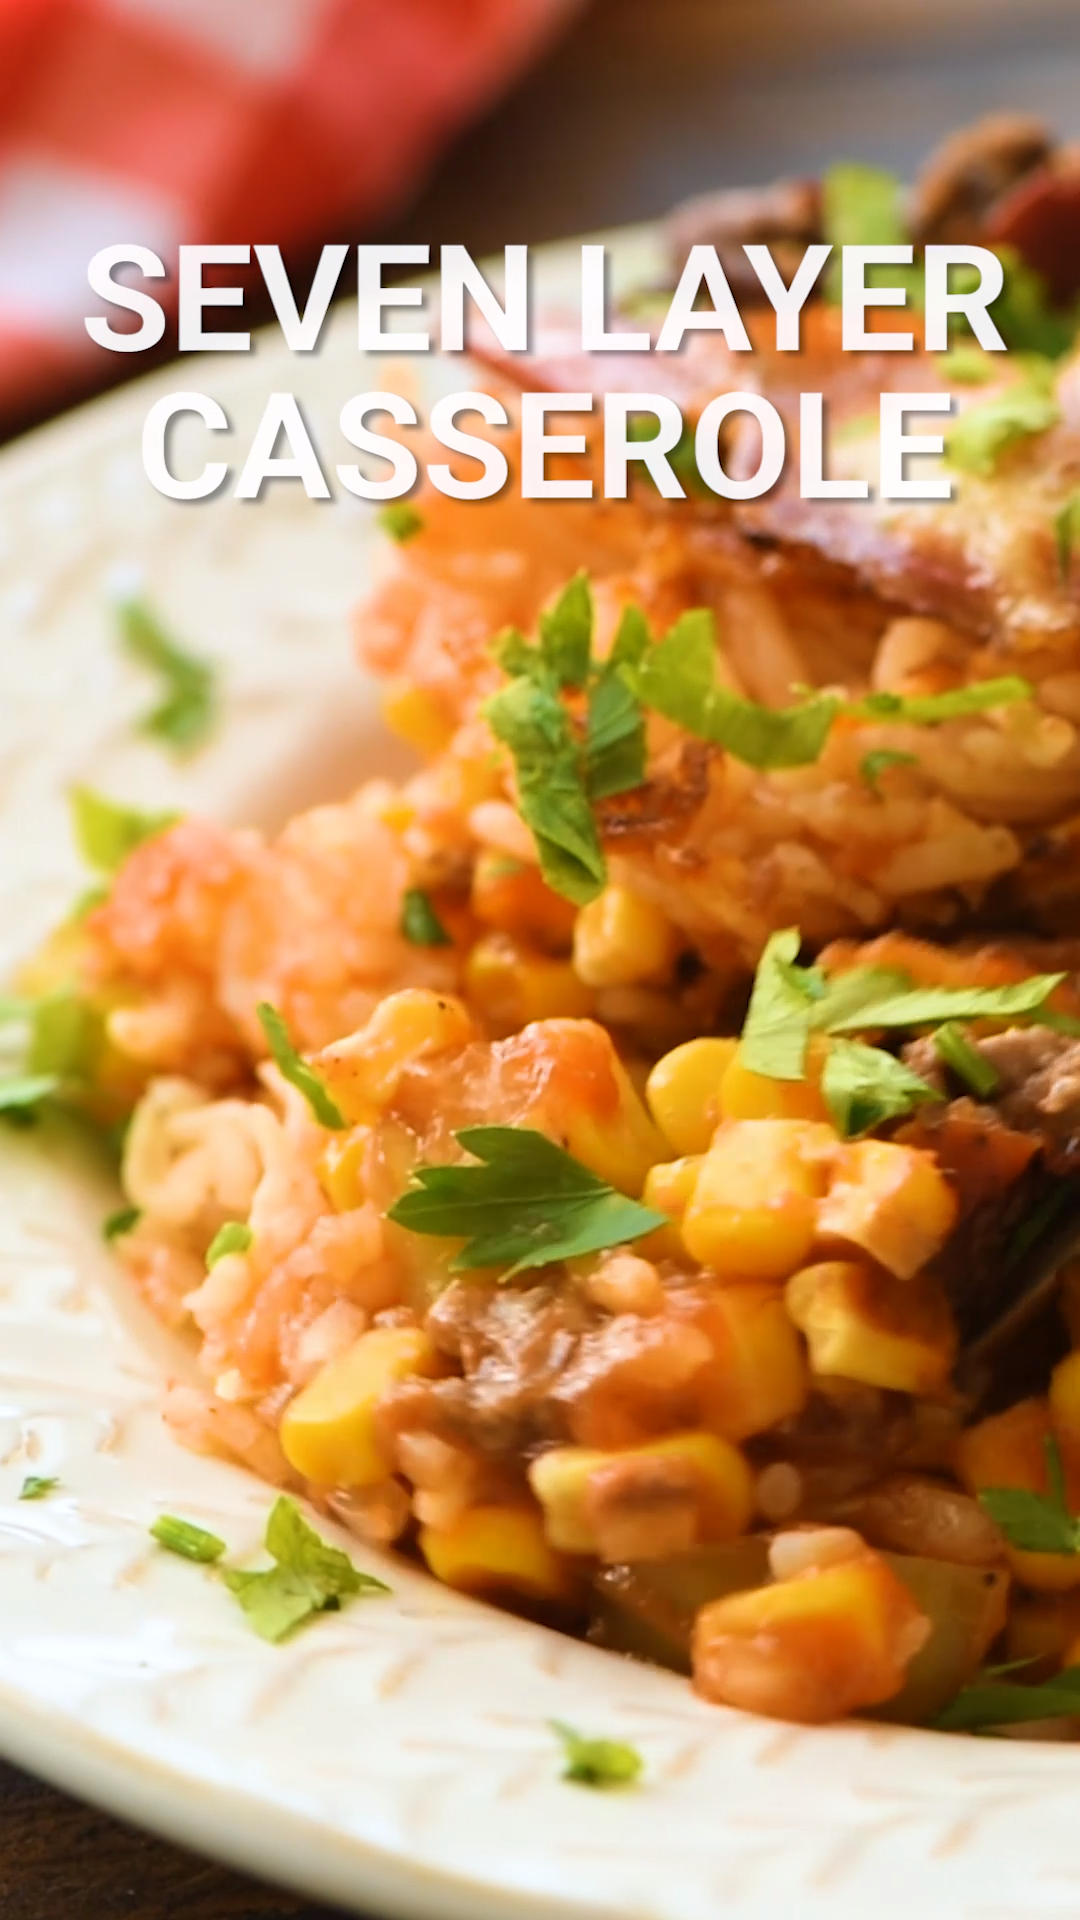 7 Layer Casserole Video Ground Beef Recipes For Dinner Ground Beef Recipes Easy Beef Casserole Recipes